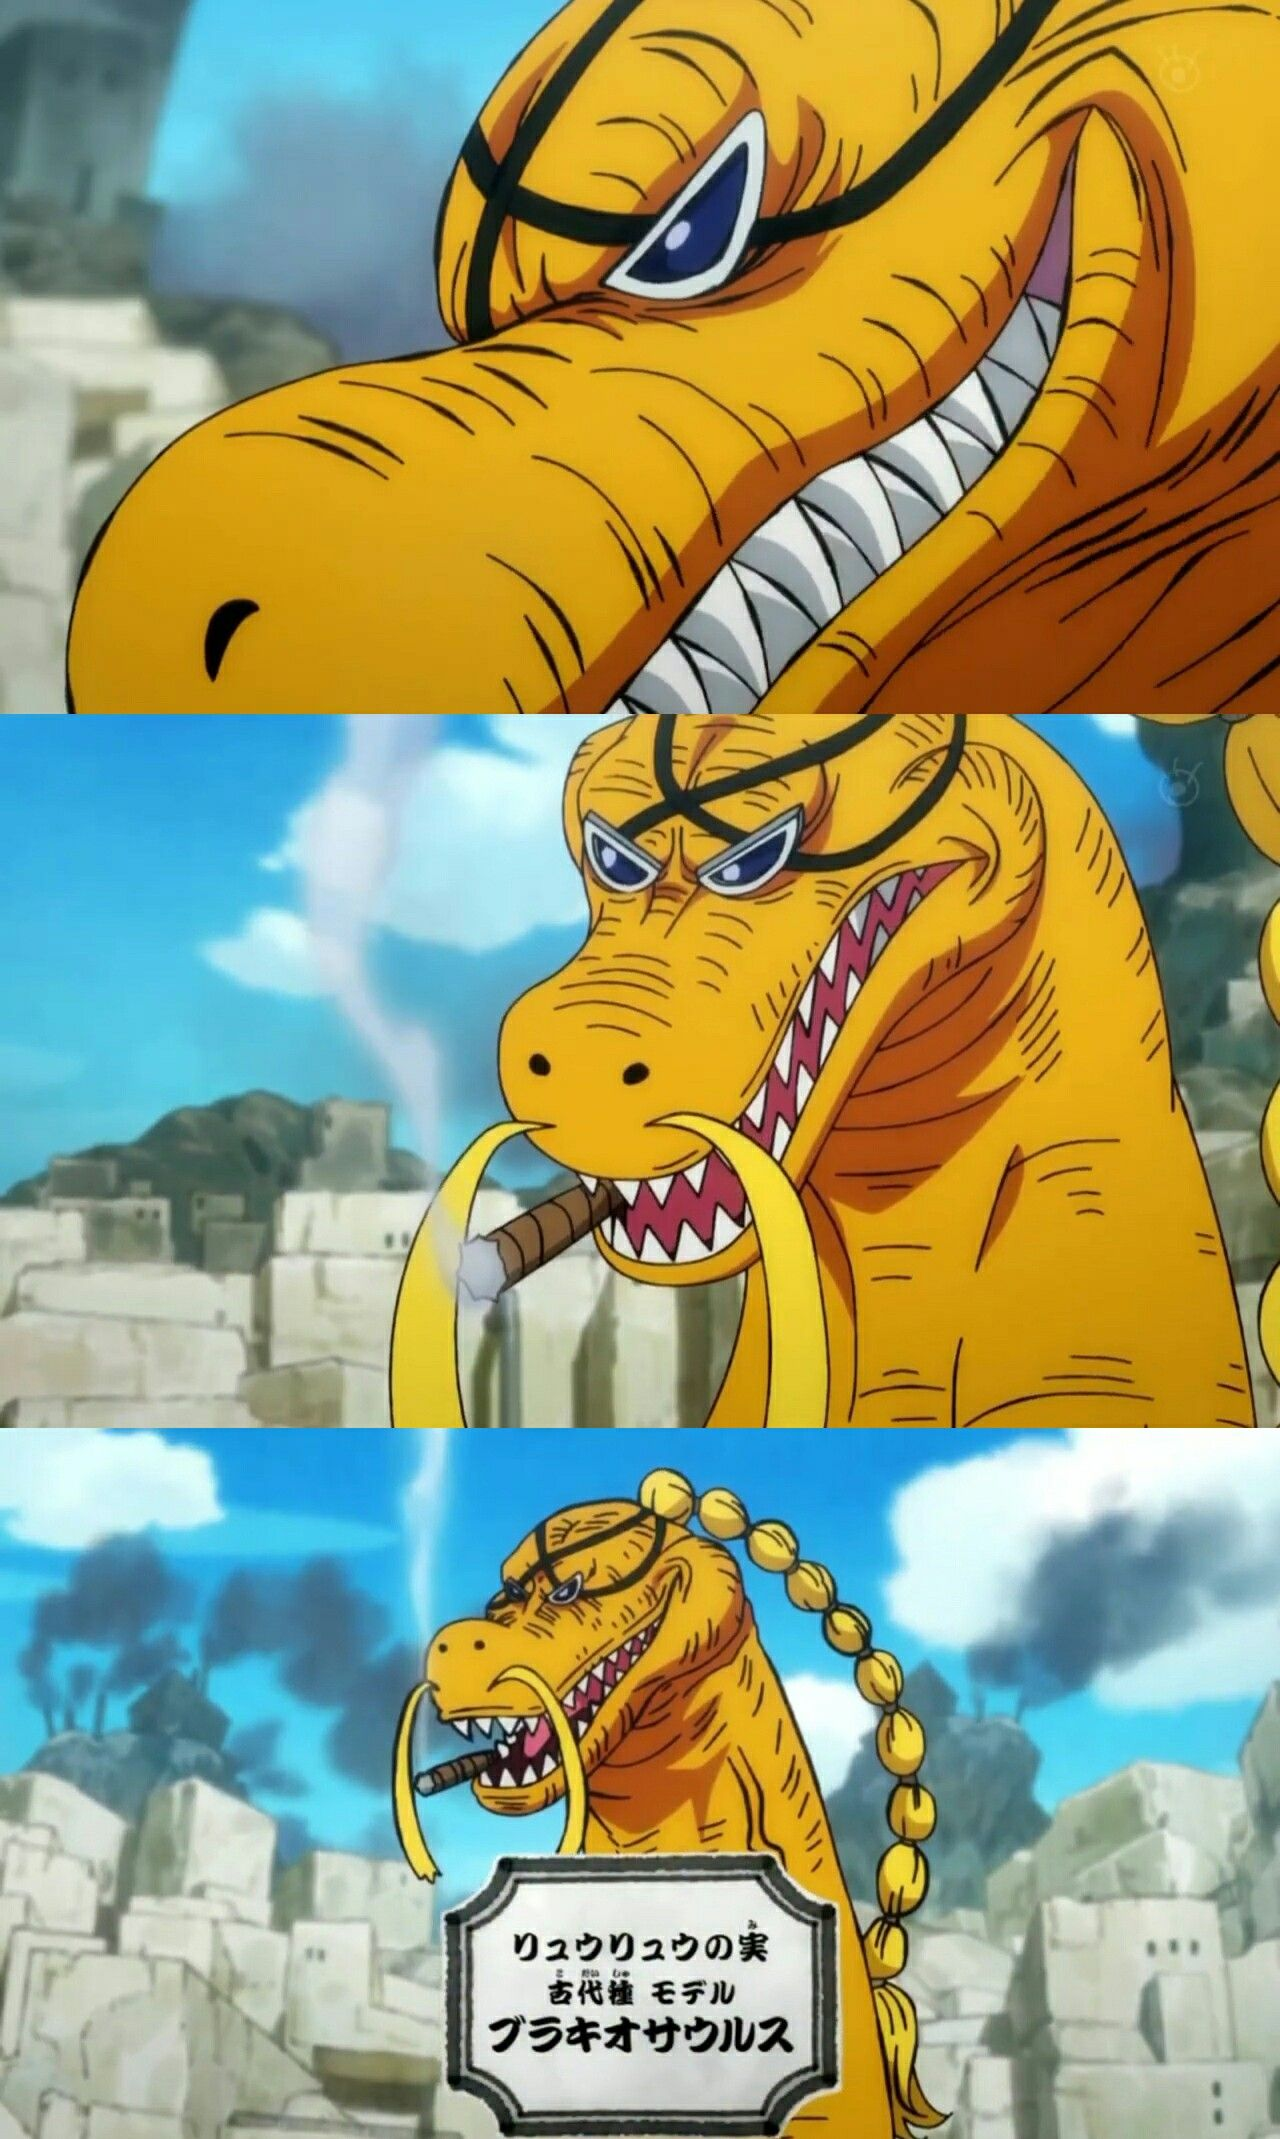 Queen's DF   One piece world, Anime one, One piece (anime)